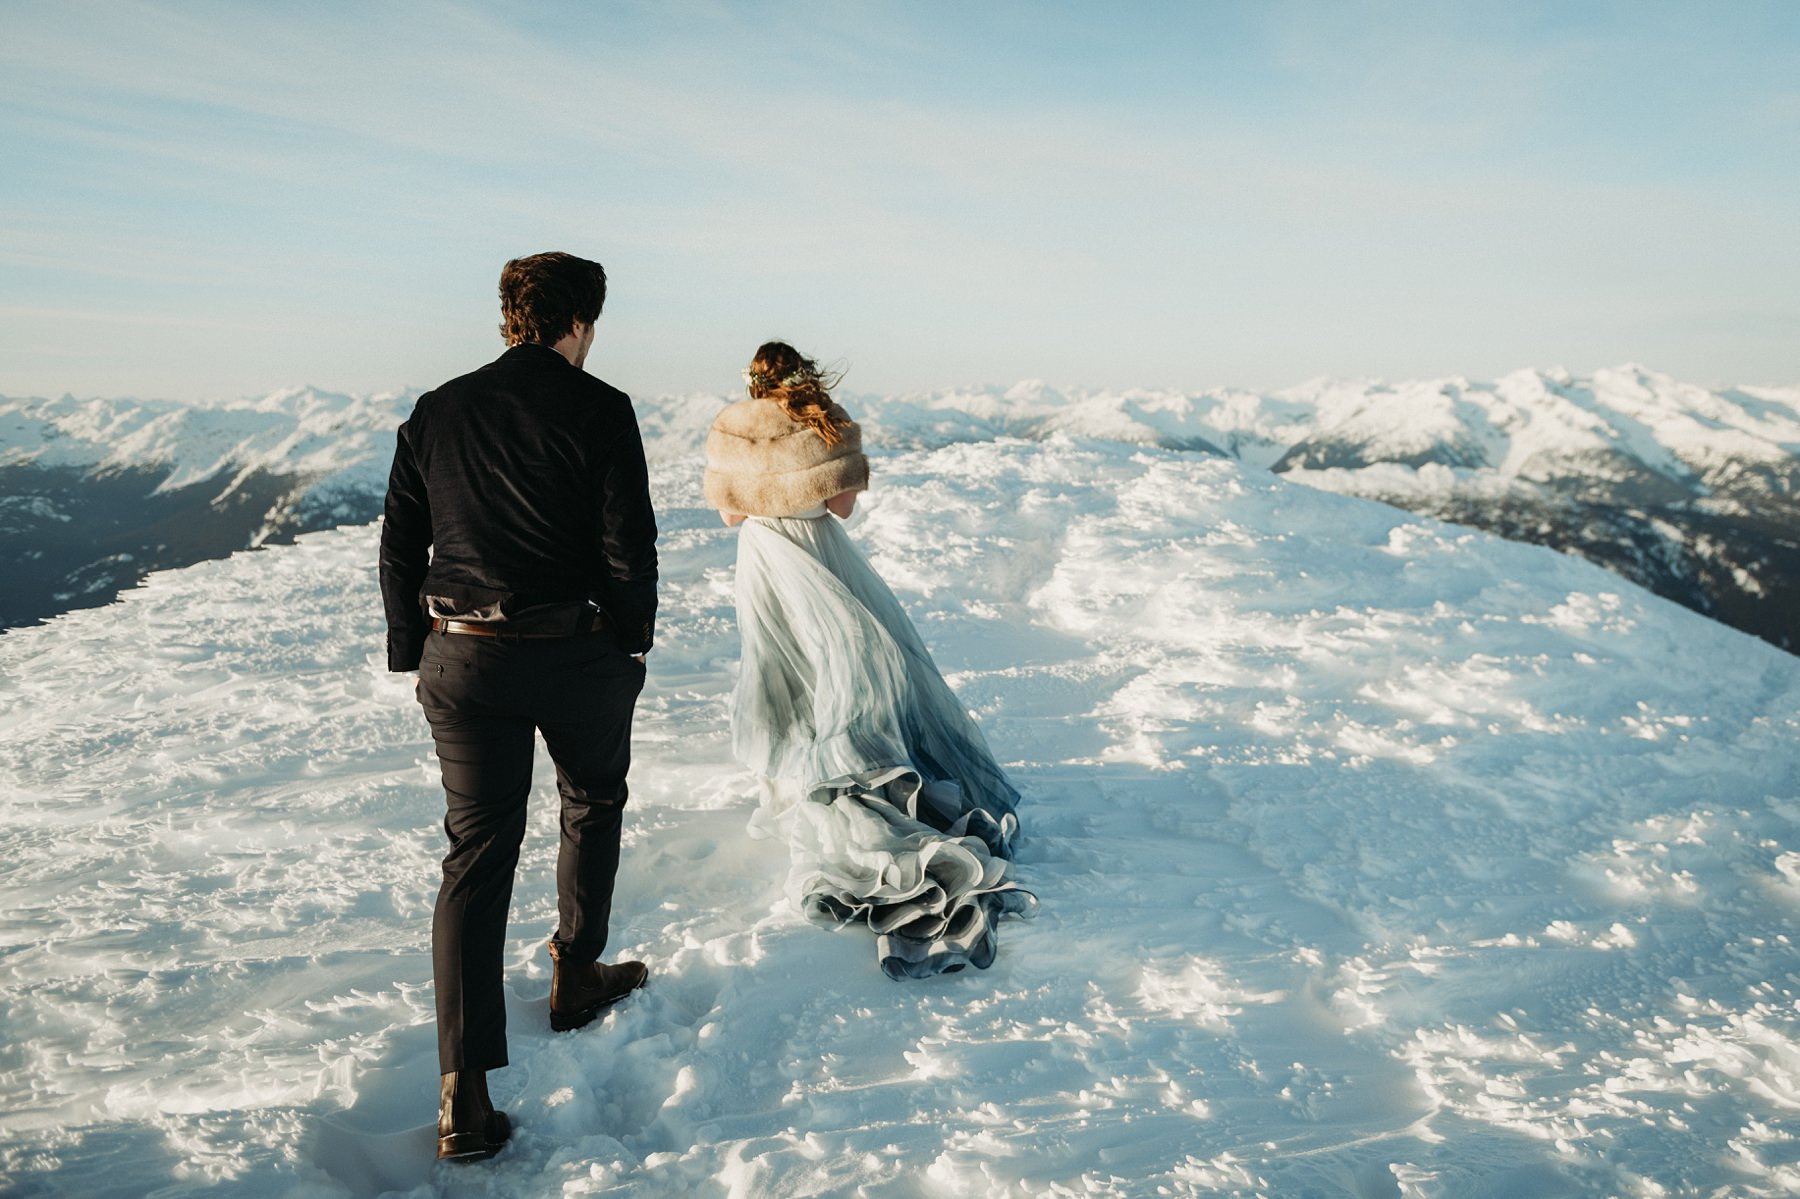 bride and groom walking in snow on mountaintop with backcomb helicopters